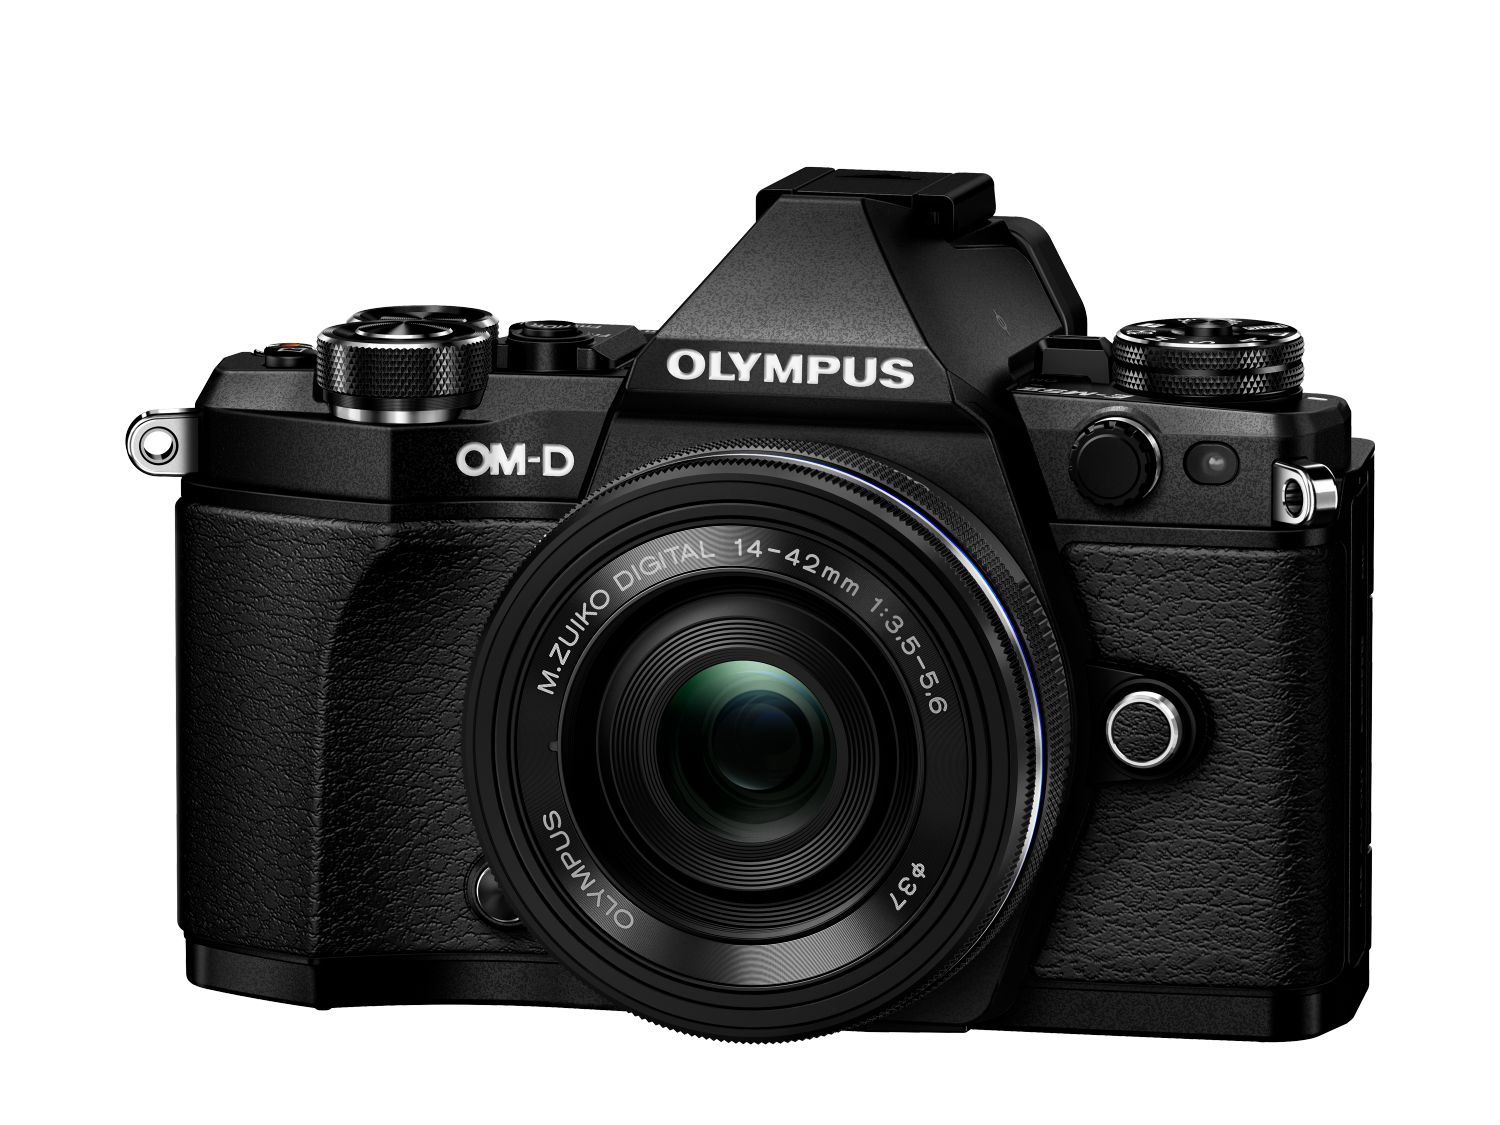 Фотоаппарат Olympus OM-D E-M5 Mark II Pancake Zoom Kit с объективом 14-42 EZ черный (V207044BE000) фото